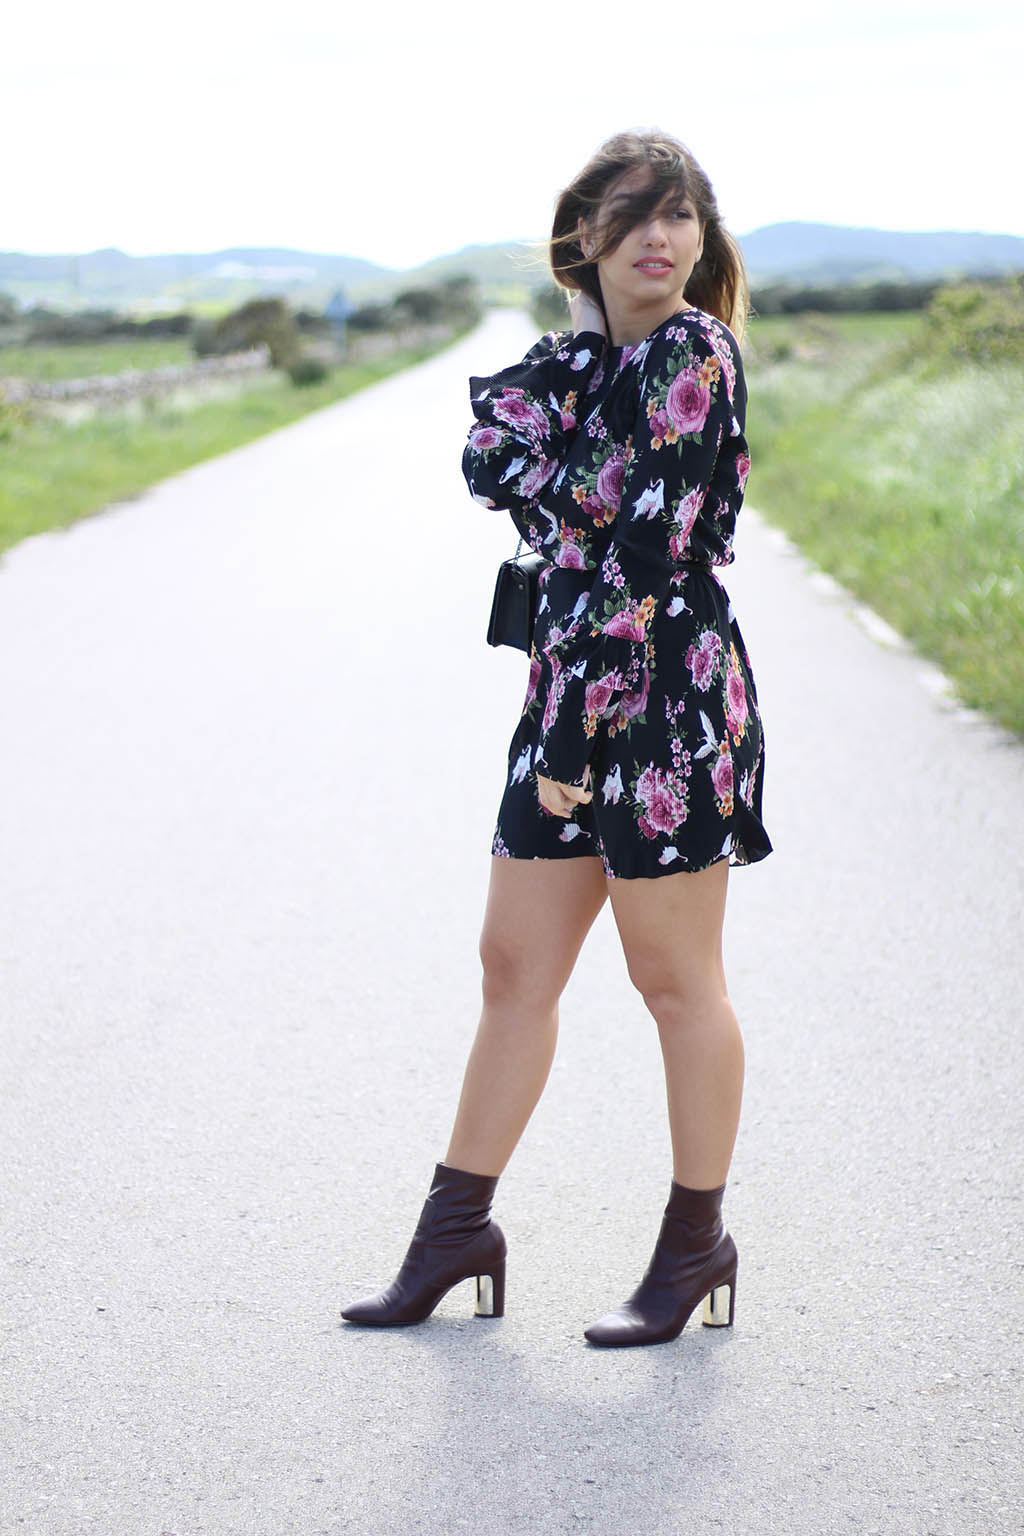 fashion-blog-mode-style-look-tenue-avis-conseil-inspiration-spring